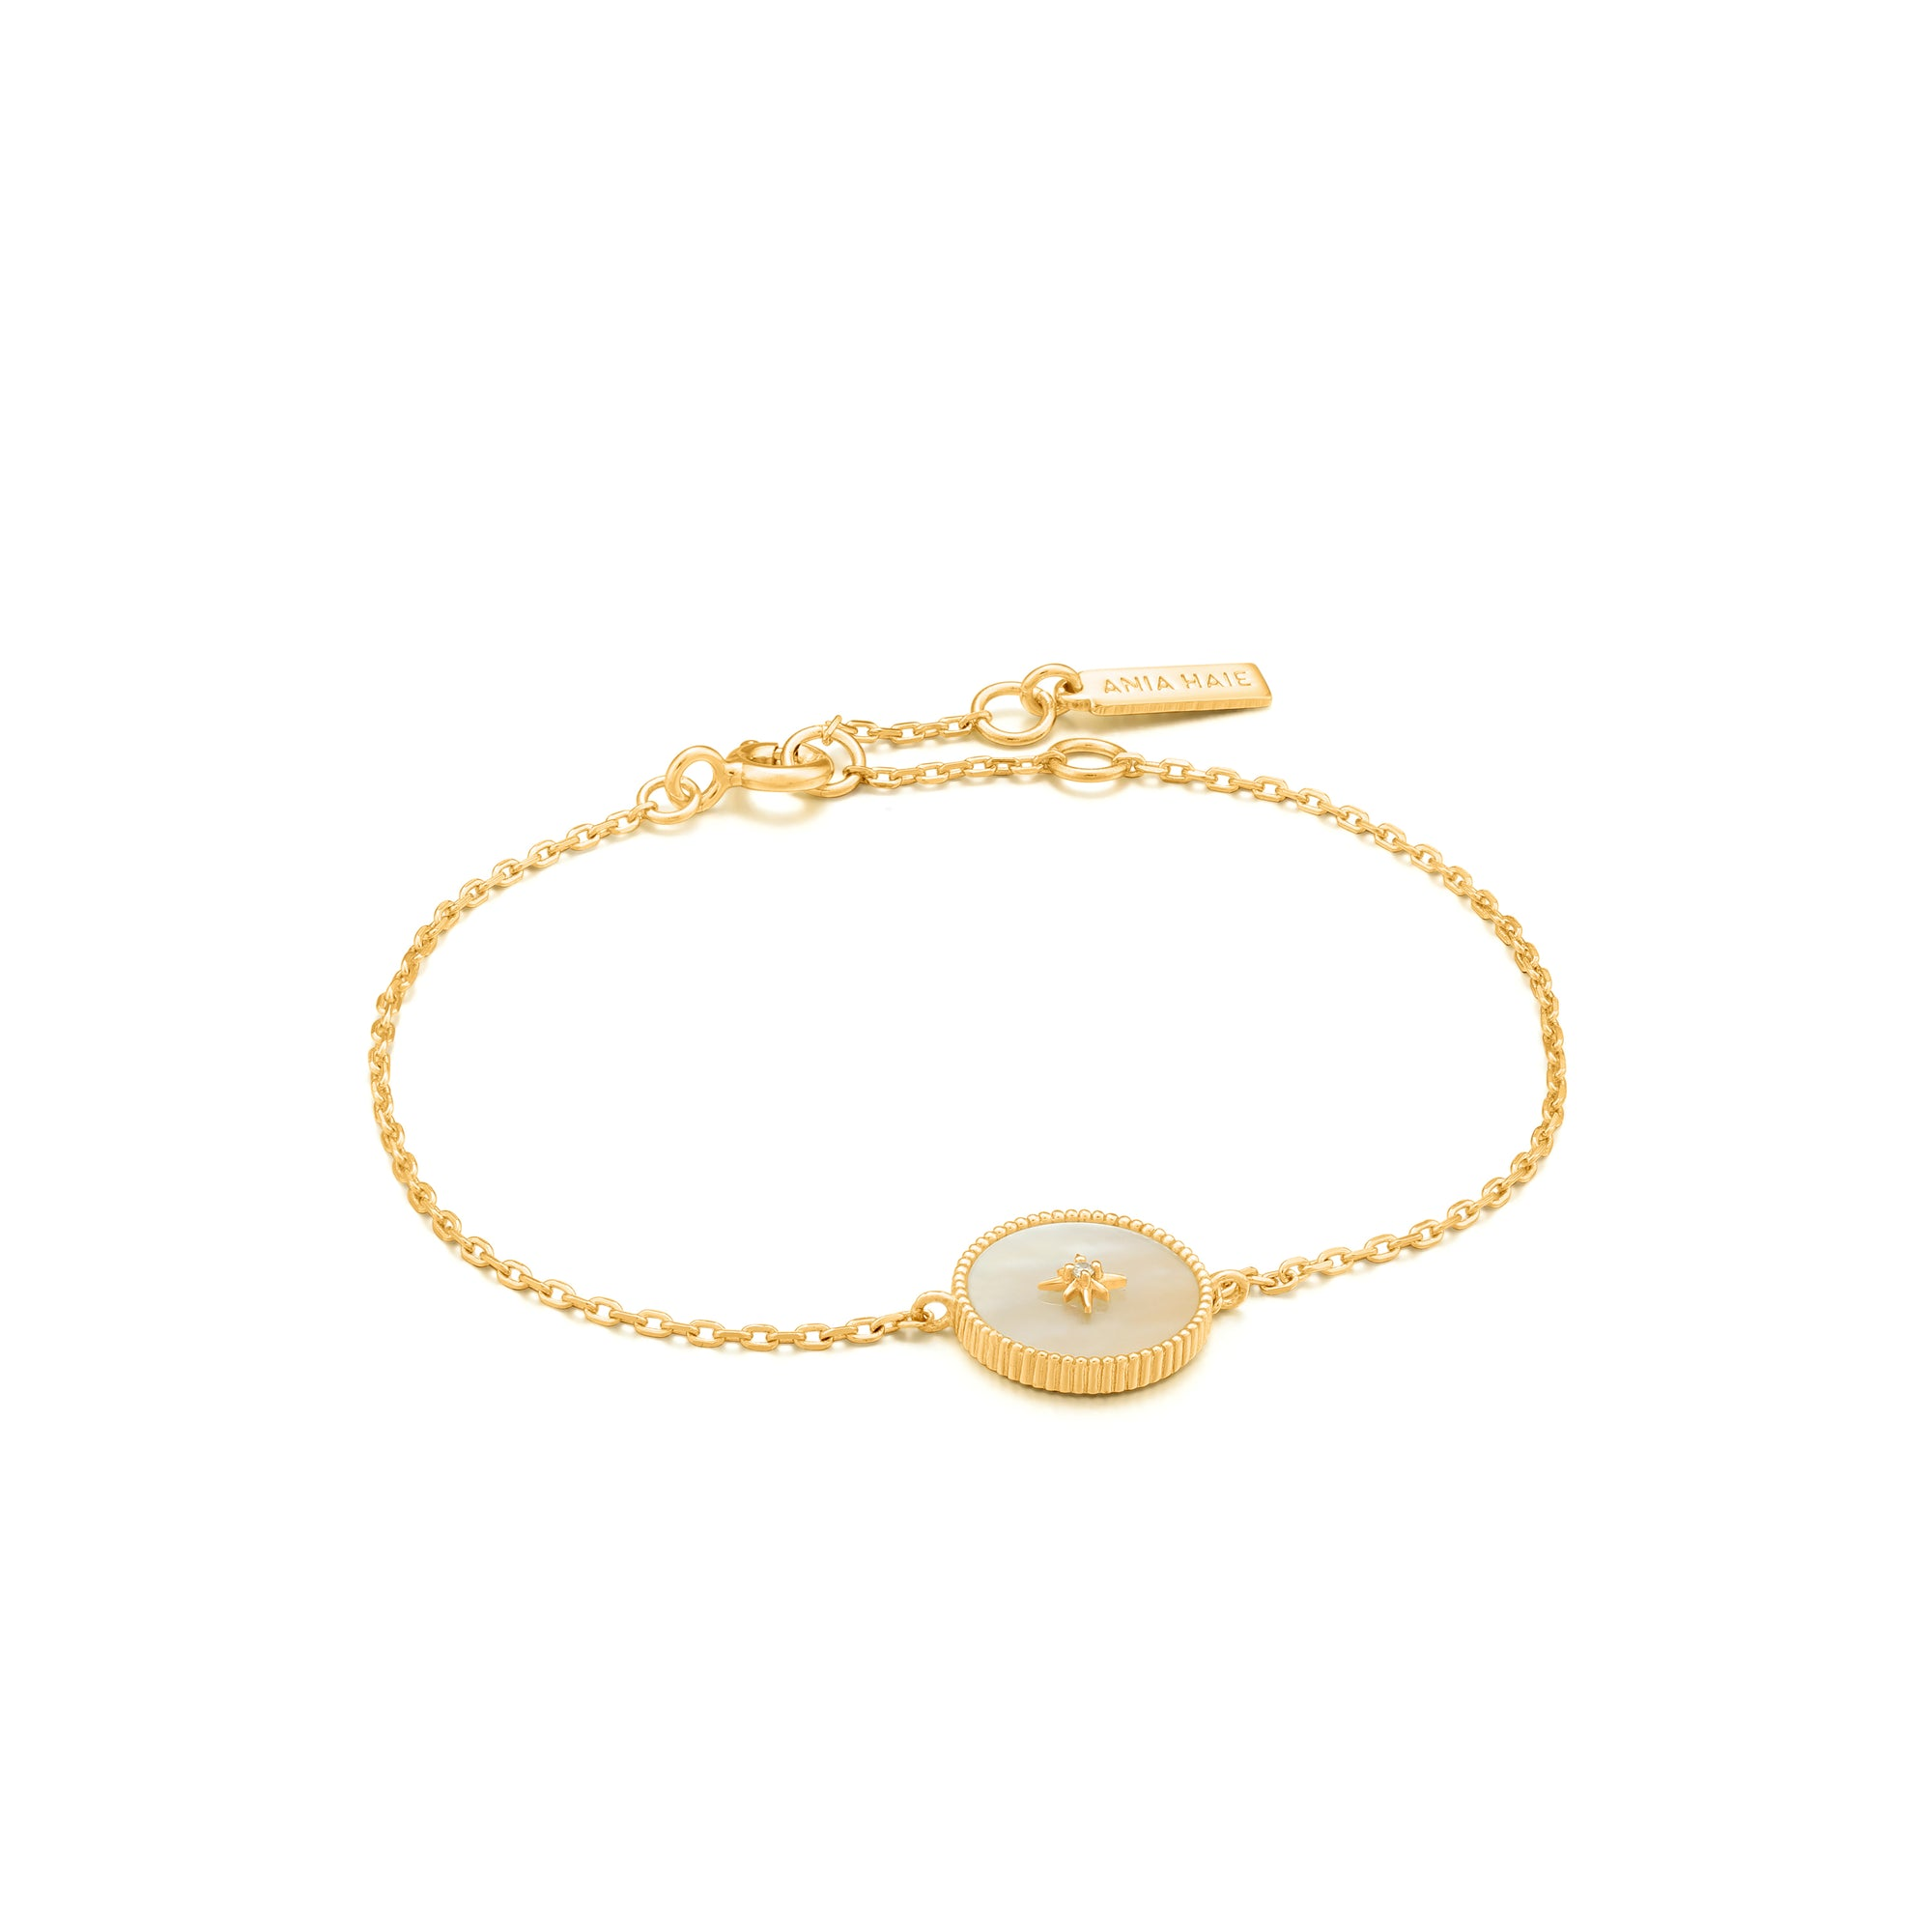 MOTHER OF PEARL EMBLEM BRACELET